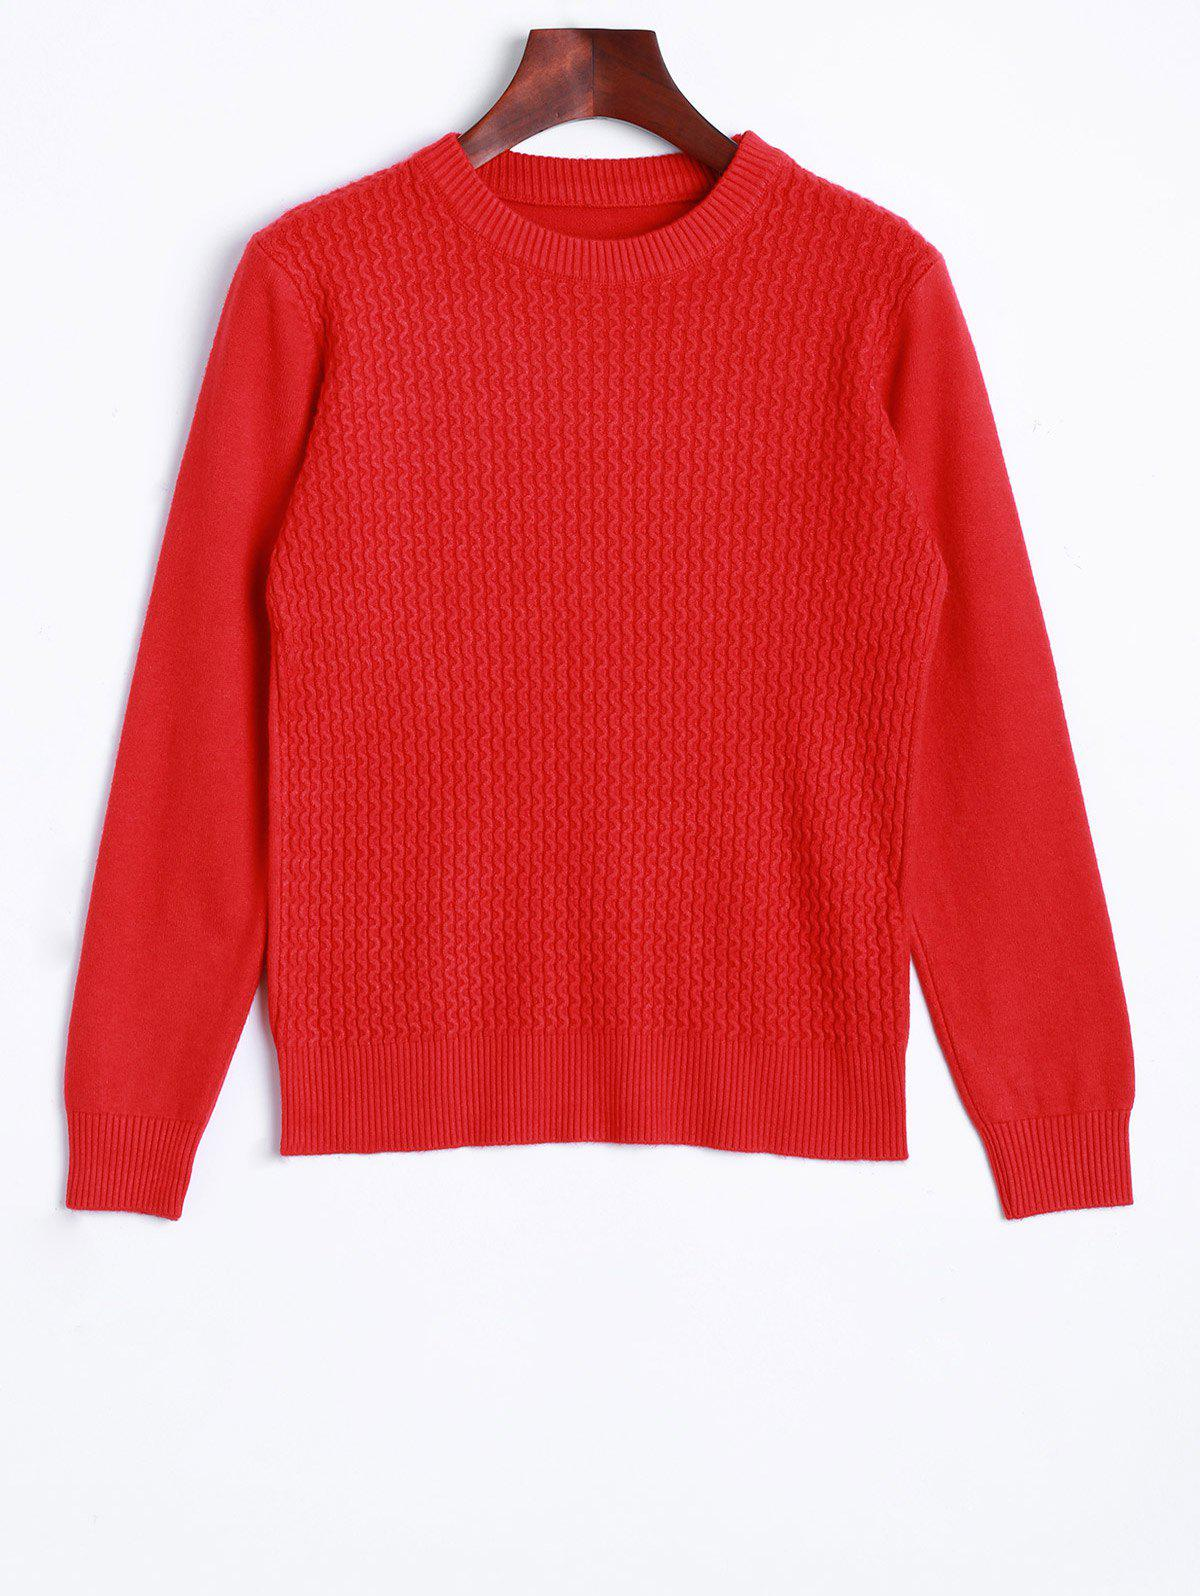 Unique Crew Neck Wave Patter Knitted Sweater